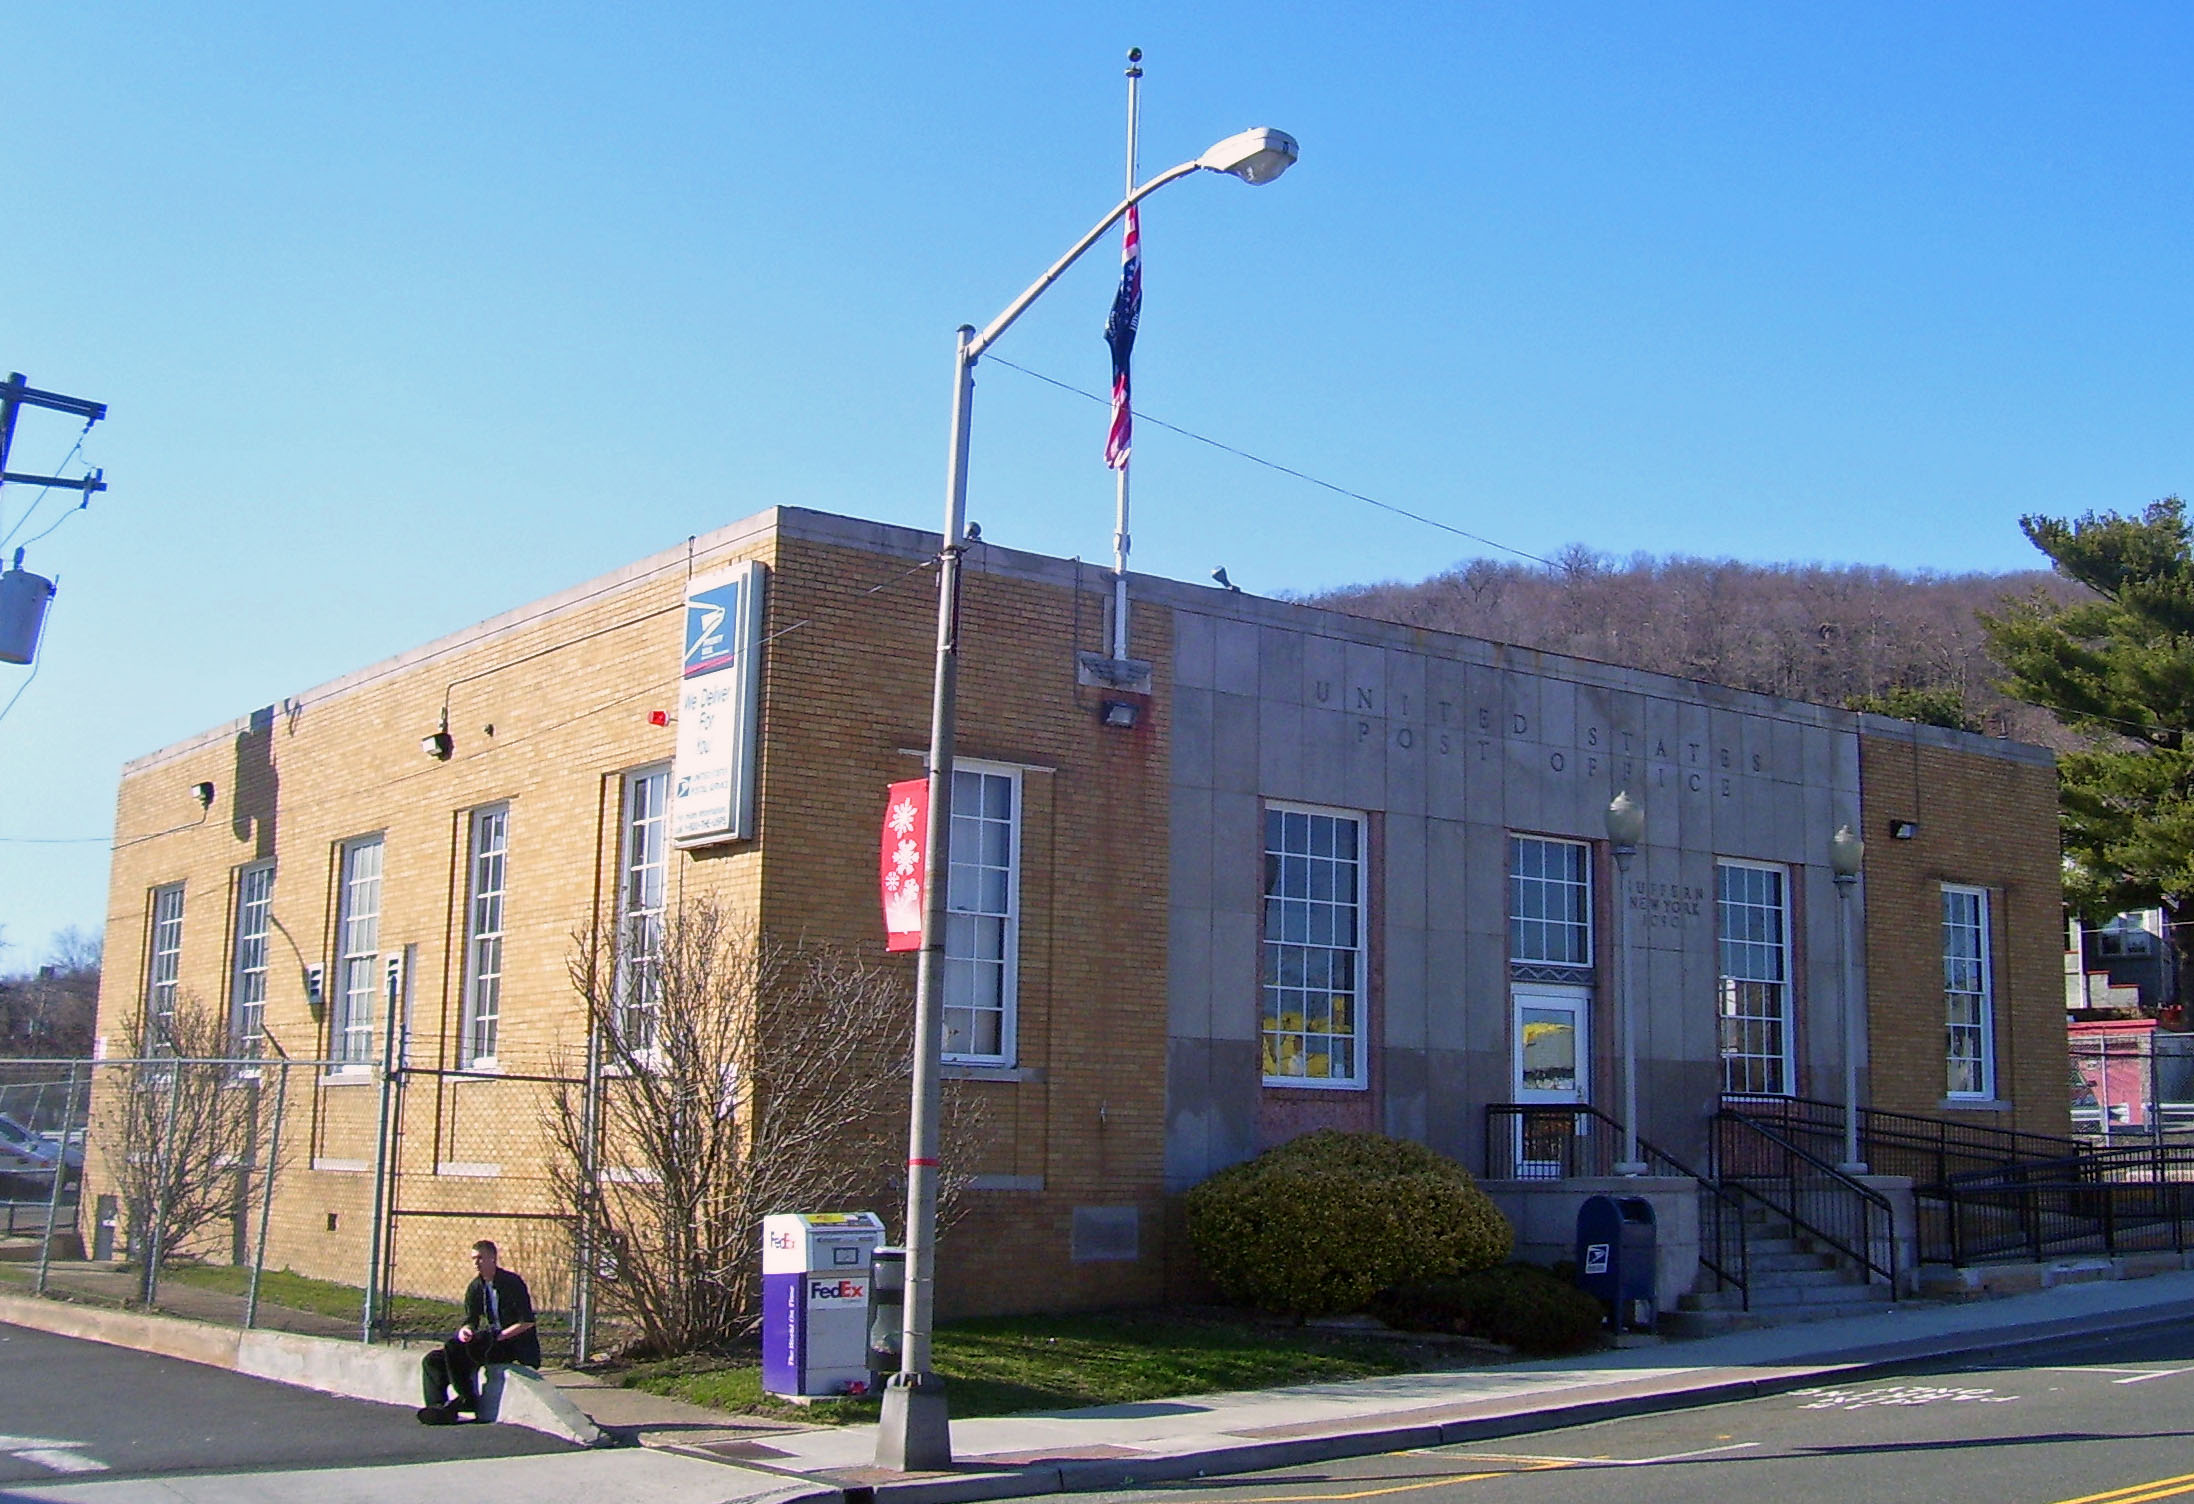 United States Post fice Suffern New York